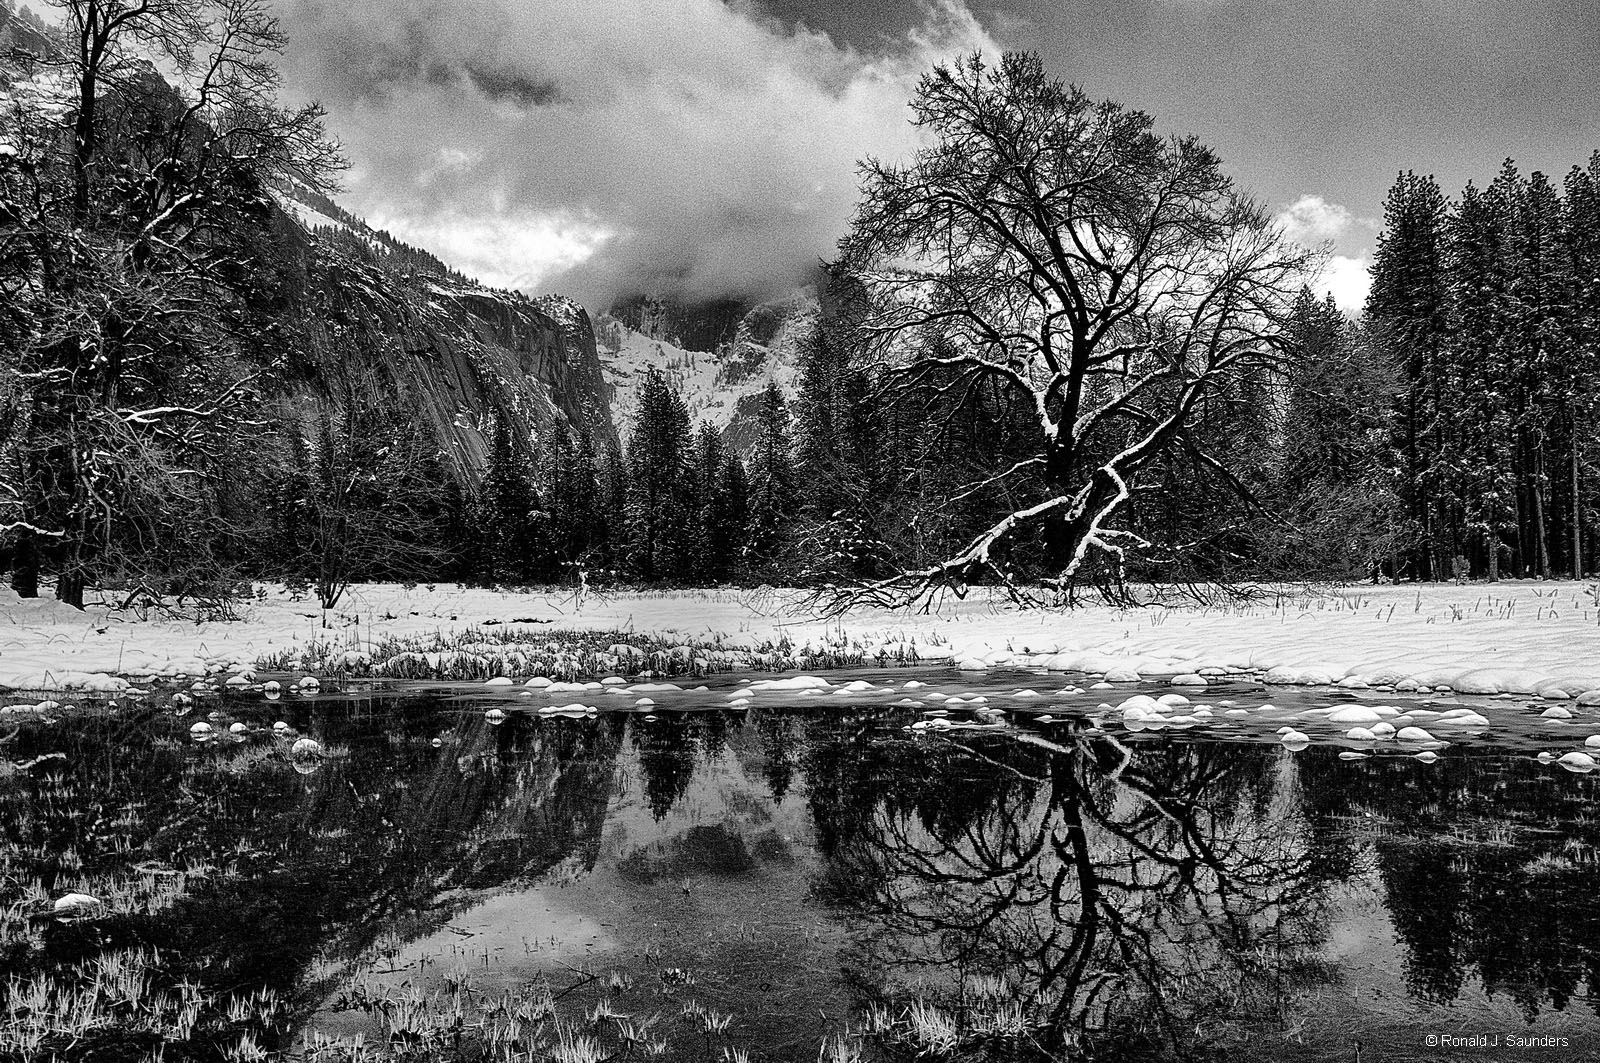 yosemite, meadows, pond, winter, reflection, B&W, ron, ron saunders, ronald, ronald j saunders, prints, photo